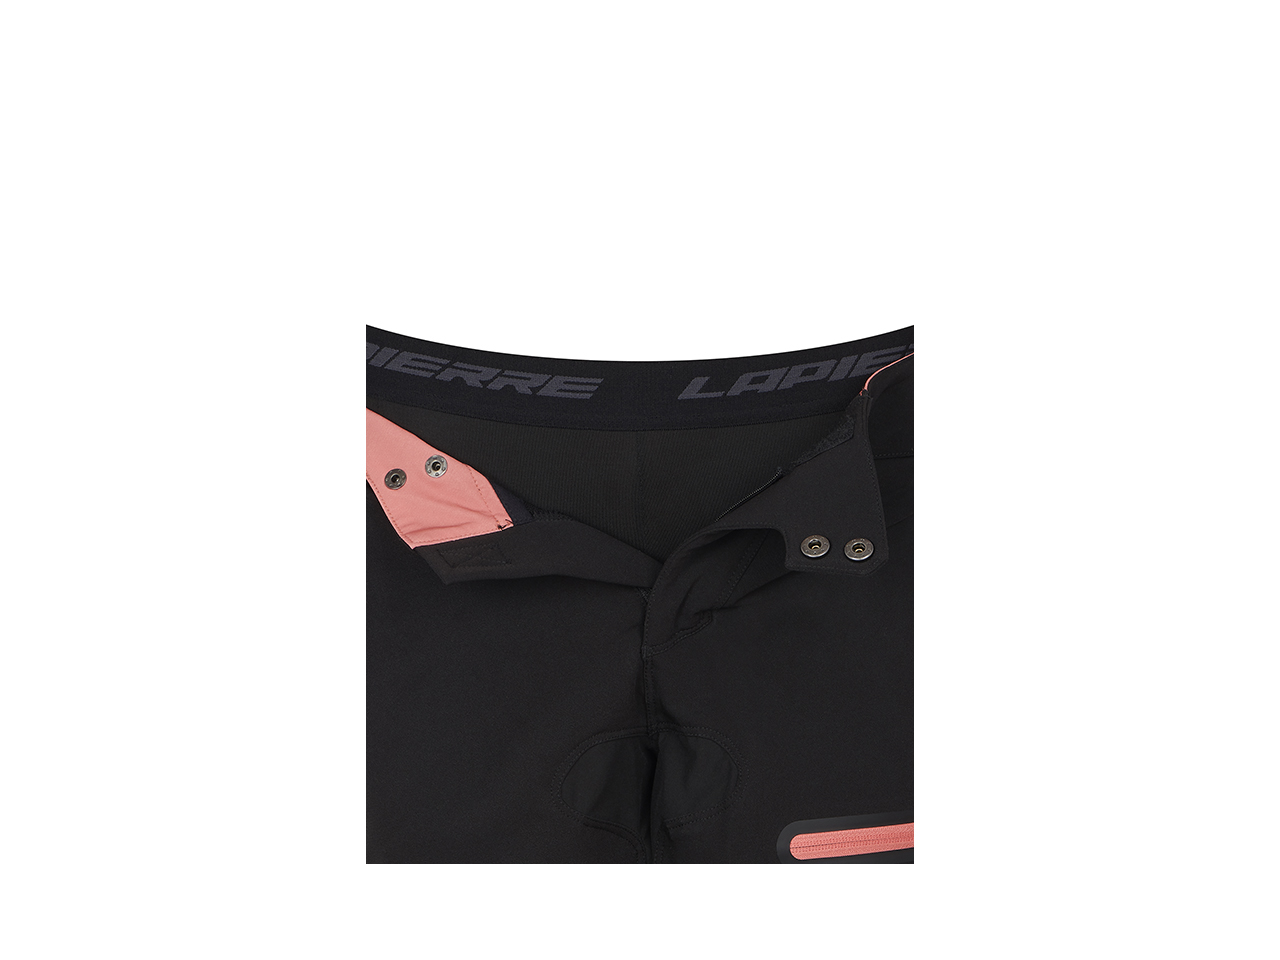 Lapierre AM Women's MTB Shorts - detail 2